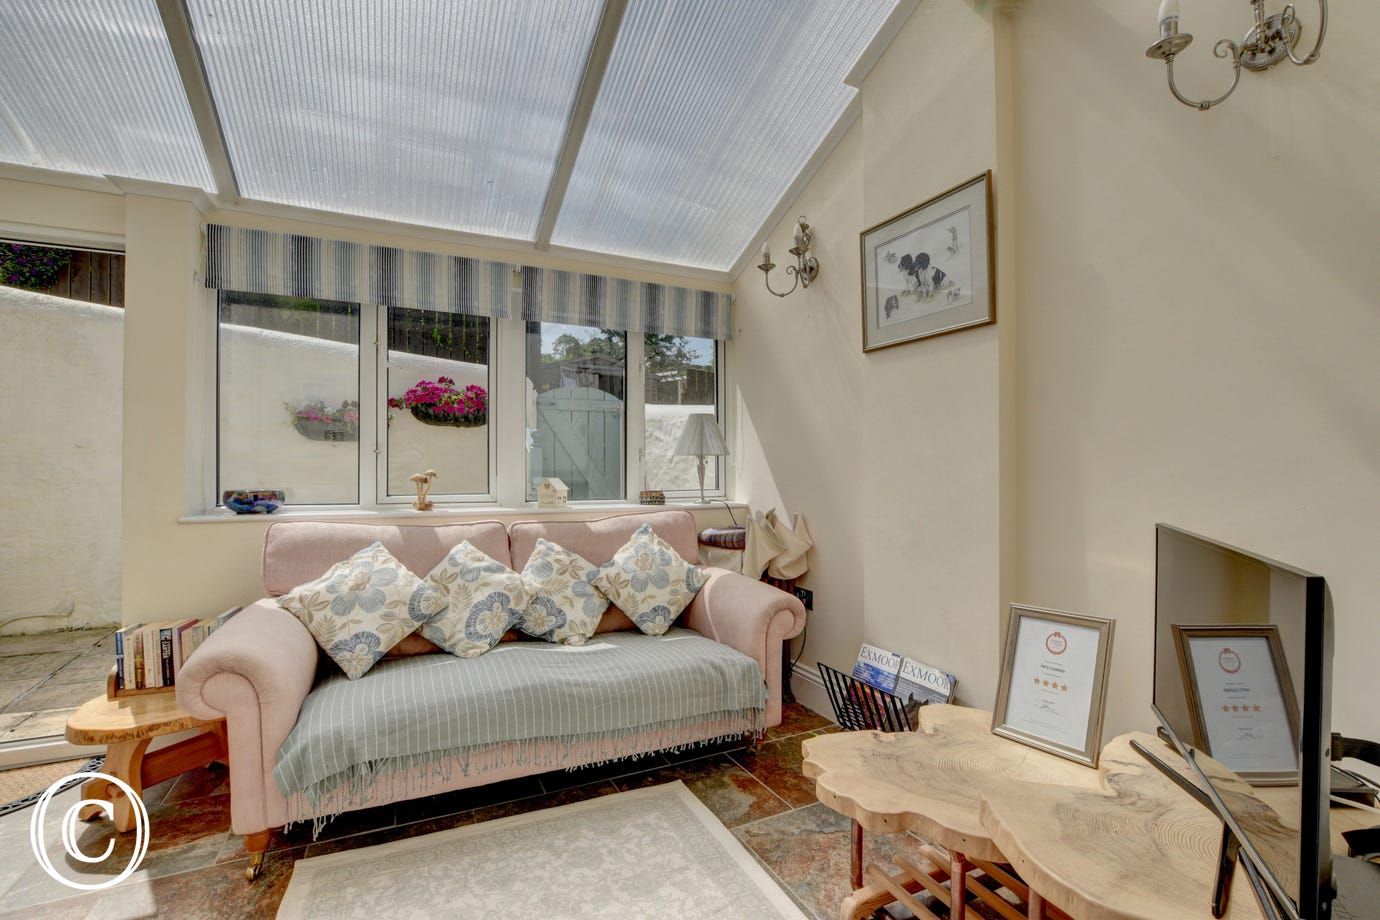 This lovely conservatory offers extra seating and another TV